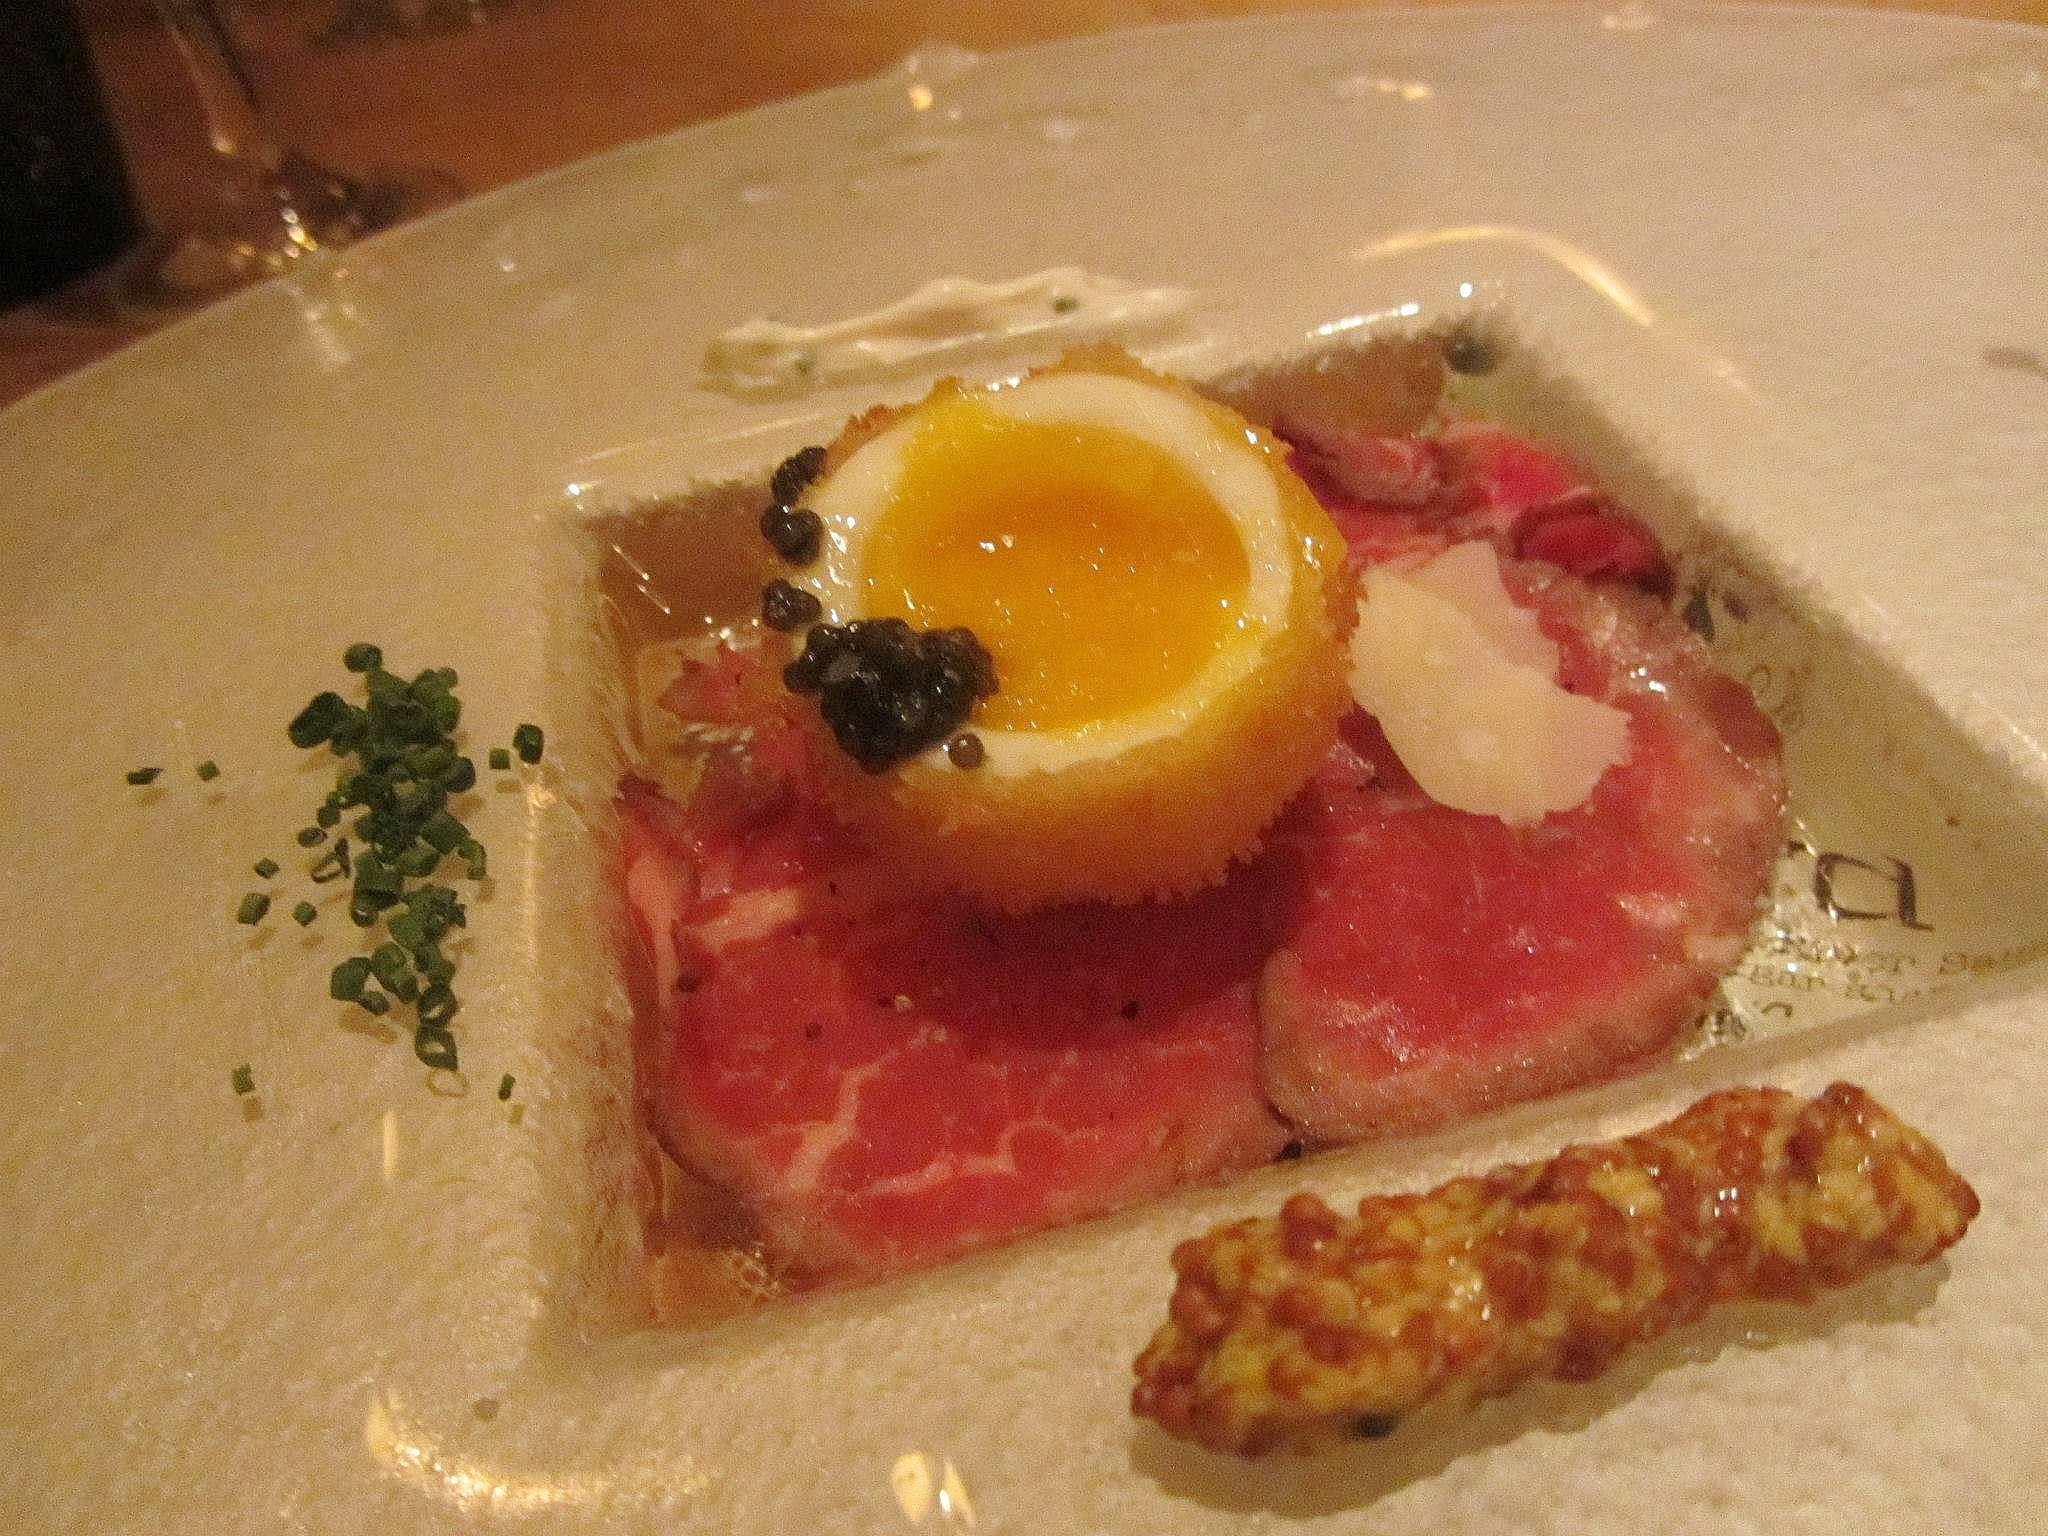 Cedar River carpaccio with caviar and a crispy egg.